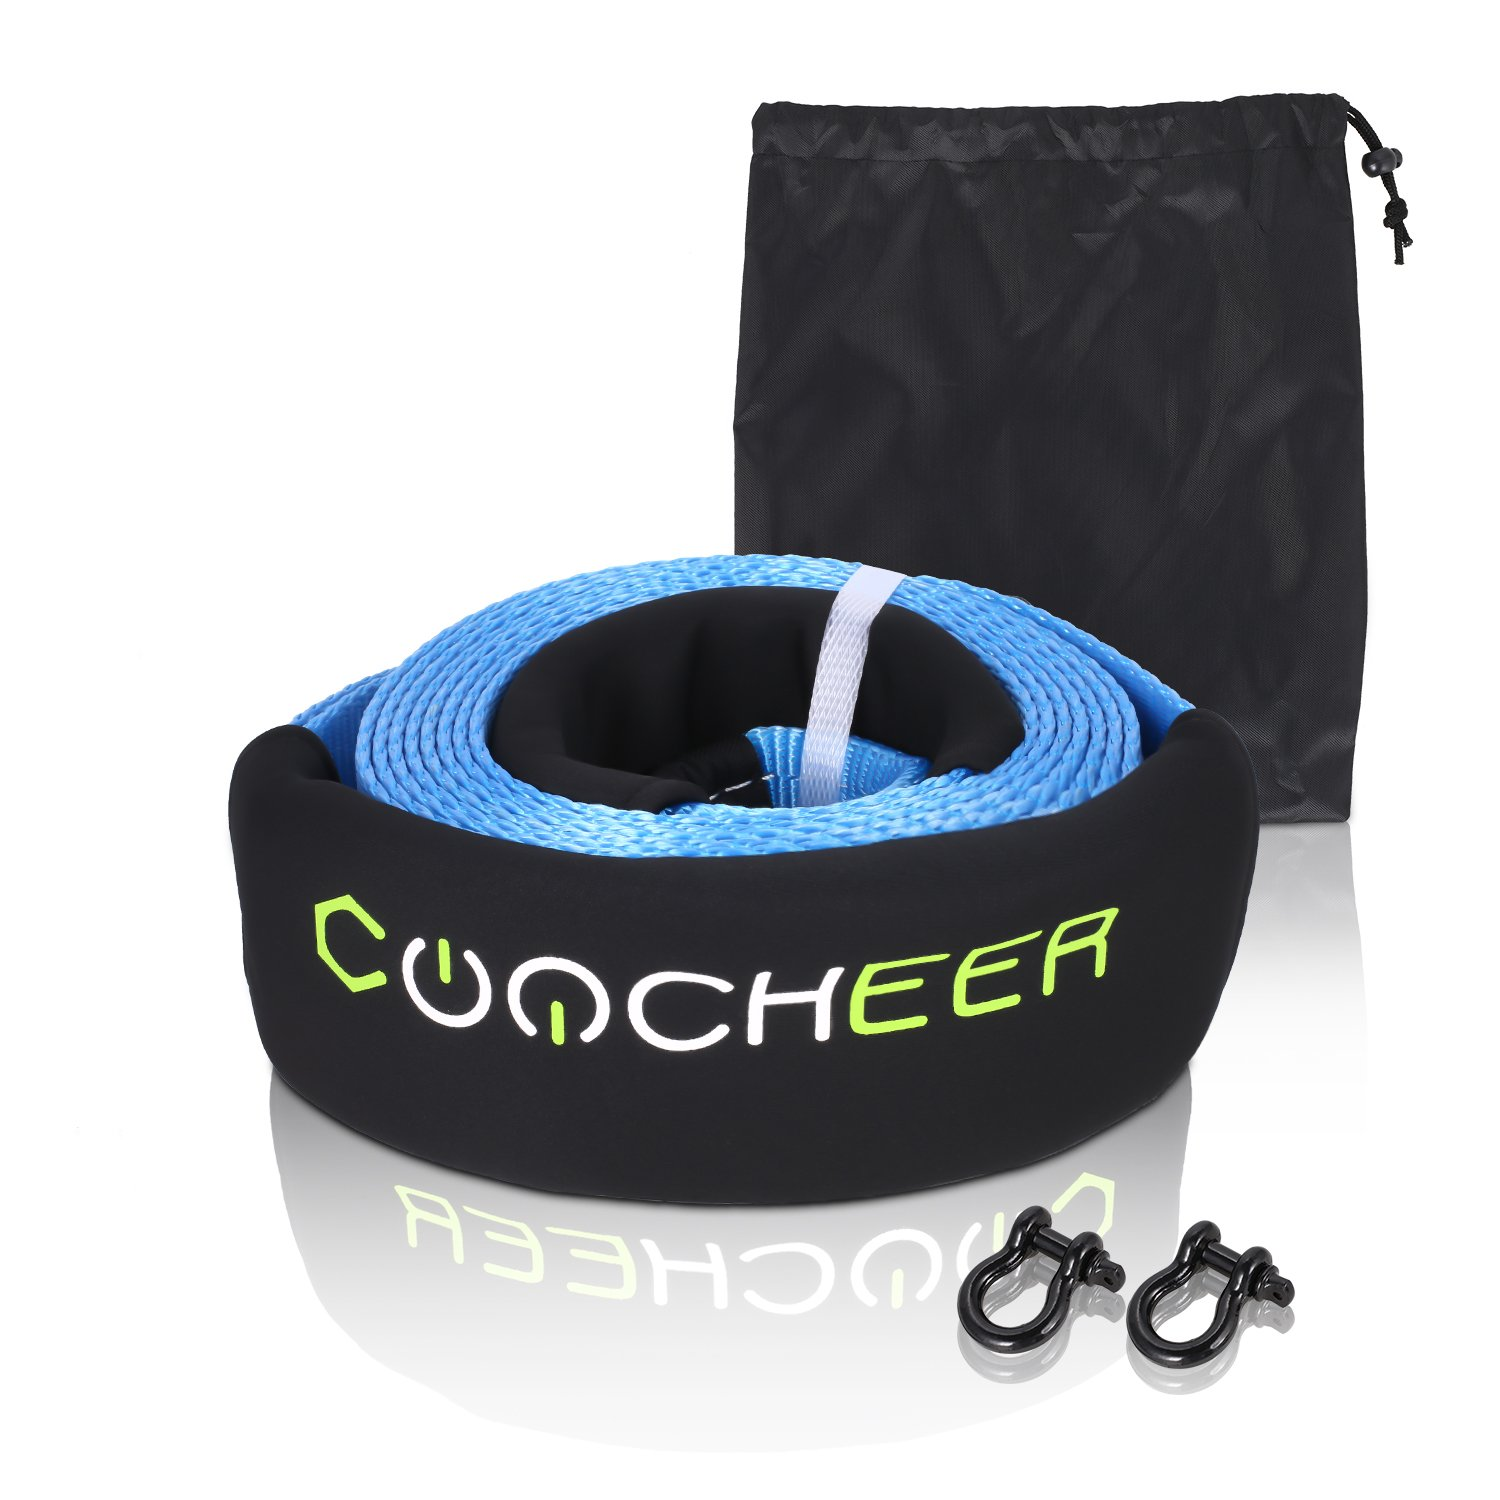 COOCHEER [US Stock] 3'' x 16' Tow Recovery Strap for Off-Road Recovery & Towing with 2 Strength D Ring Shackle, 30000lb Winch Snatch Strap (Blue, 3'' x 16') by COOCHEER